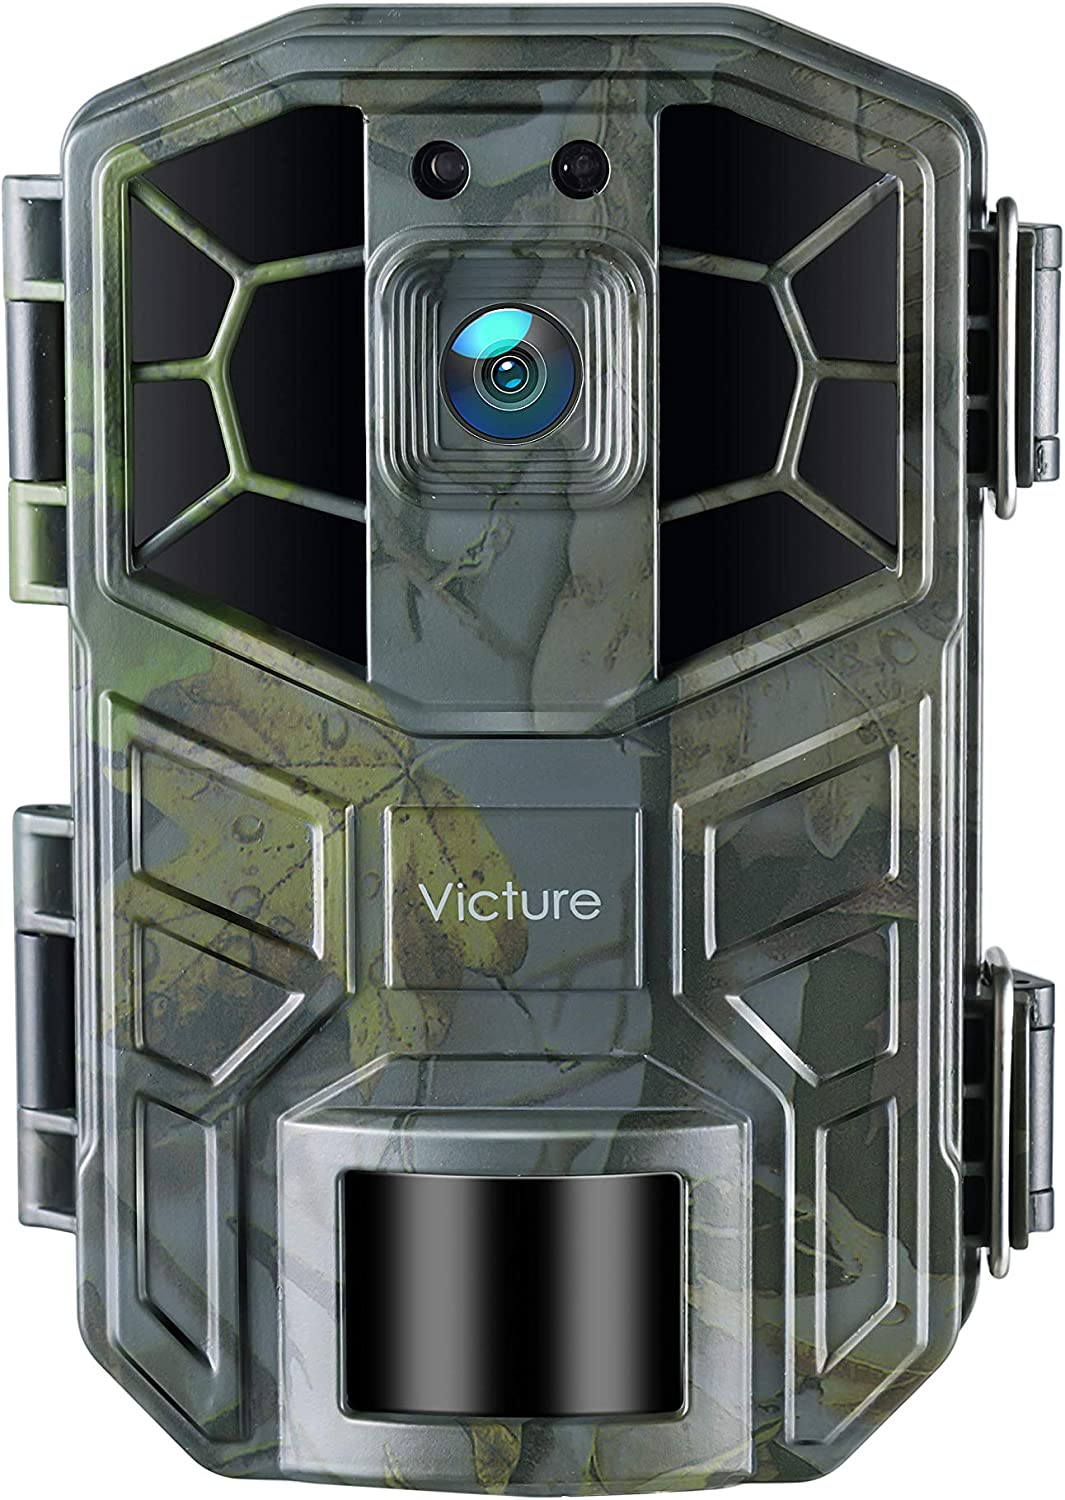 Victure Trail Camera WiFi 4K 30MP with Night Vision Motion Activated Waterproof IP66 Game Camera with 0.3sTriggerTime and 40pcs No Glow LEDs for Wildlife Watching and Home Surveillance